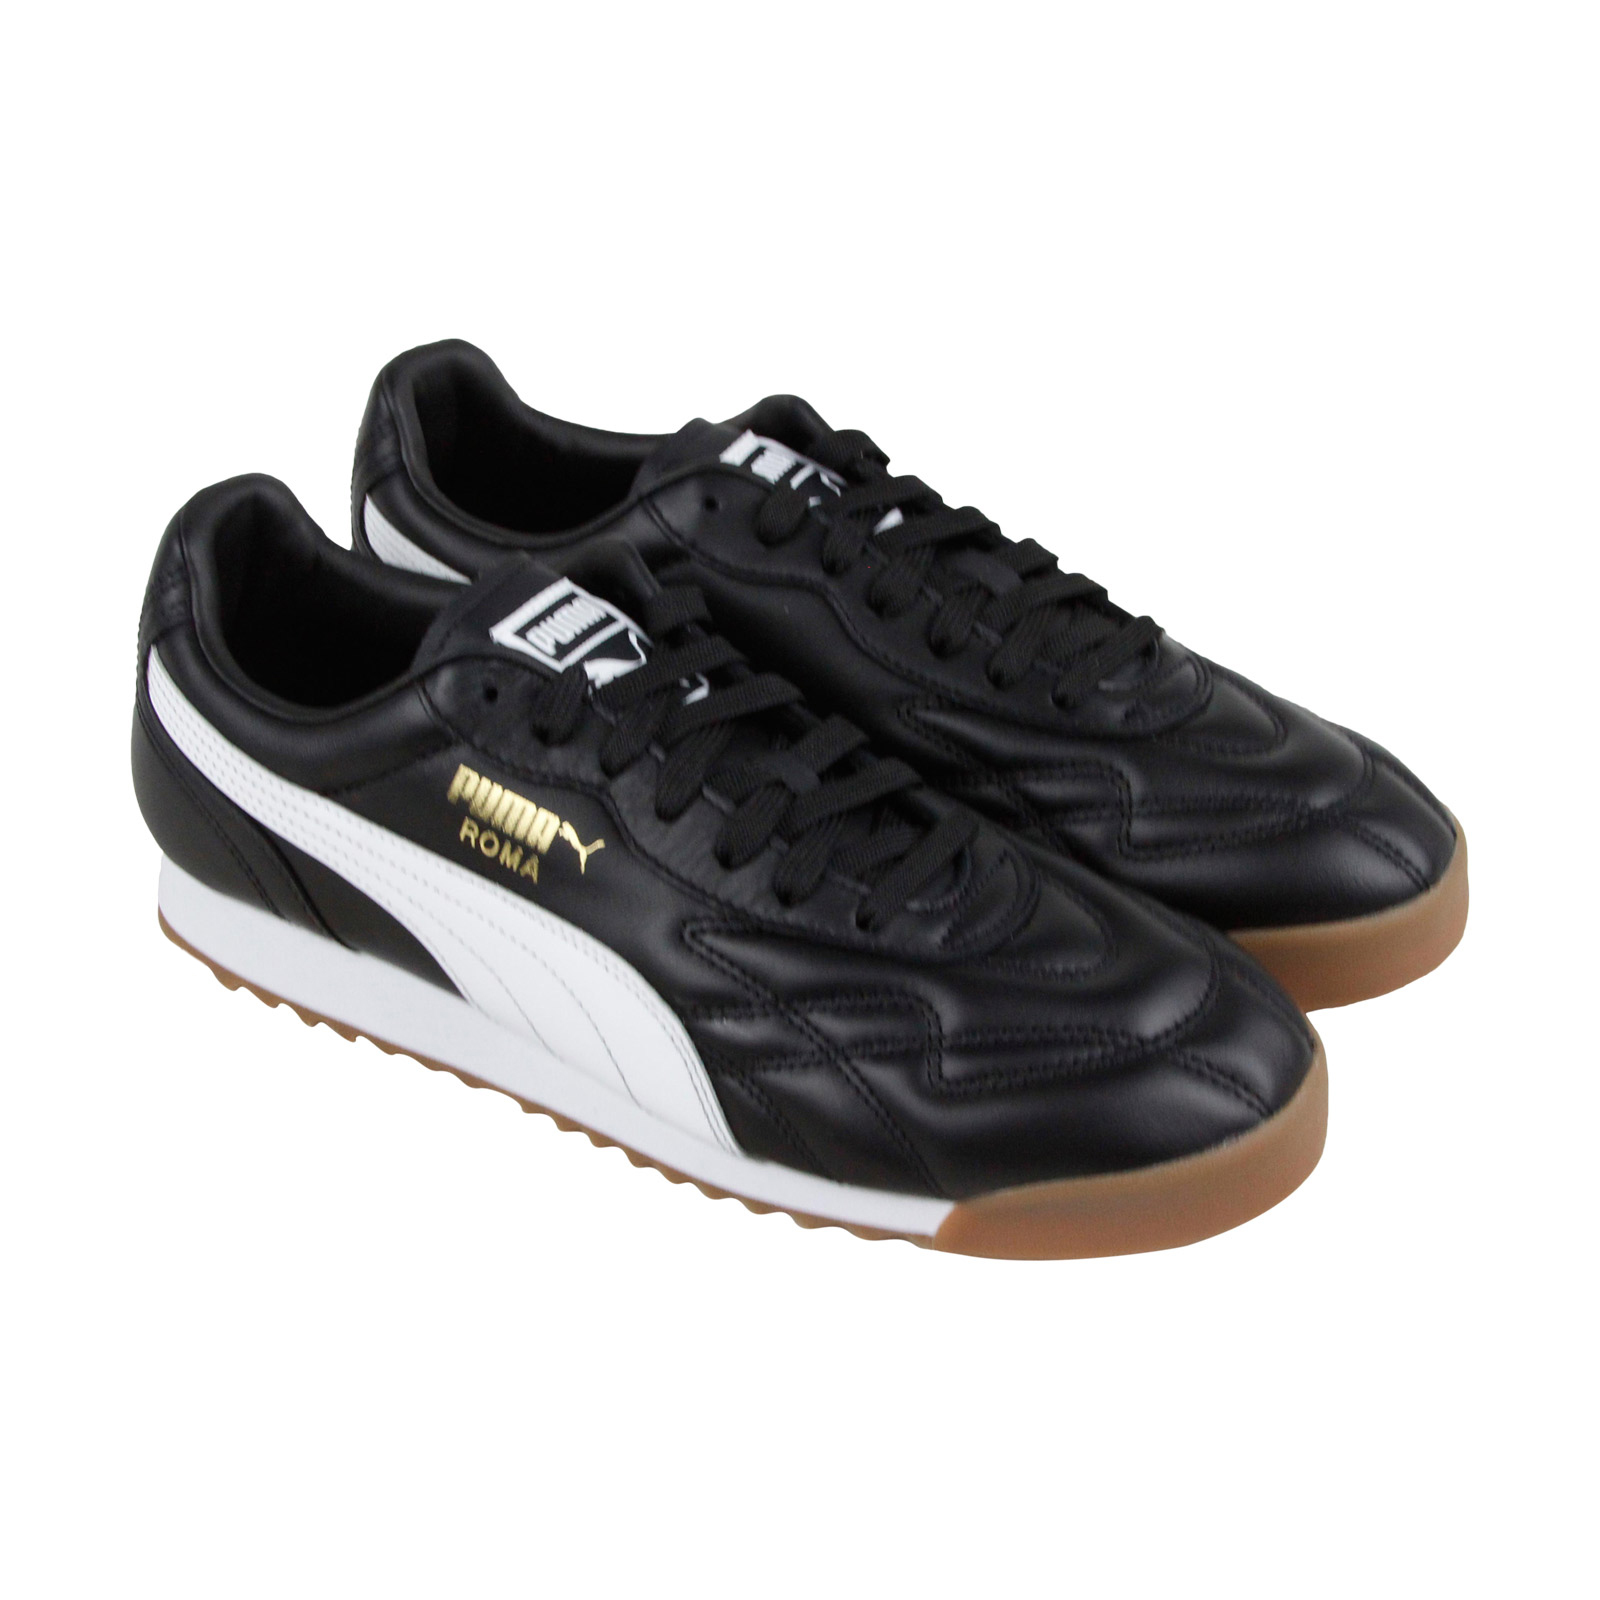 Puma Roma Anniversario homme noir Leather Lace Up Sneakers chaussures